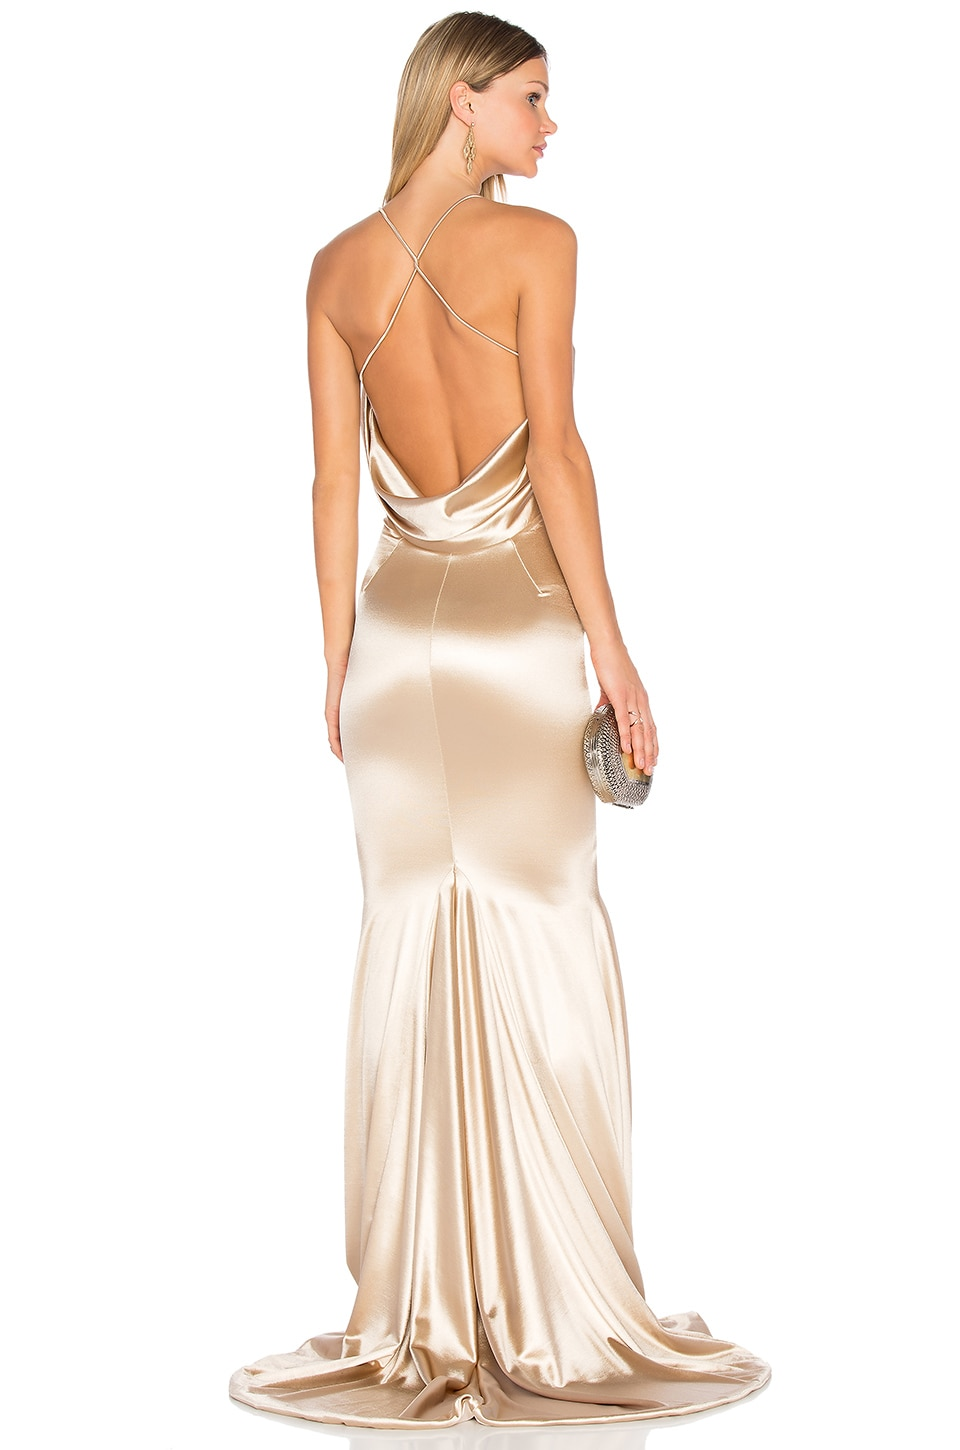 Gemeli Power Barthelemy Gown in Light Champagne Gold